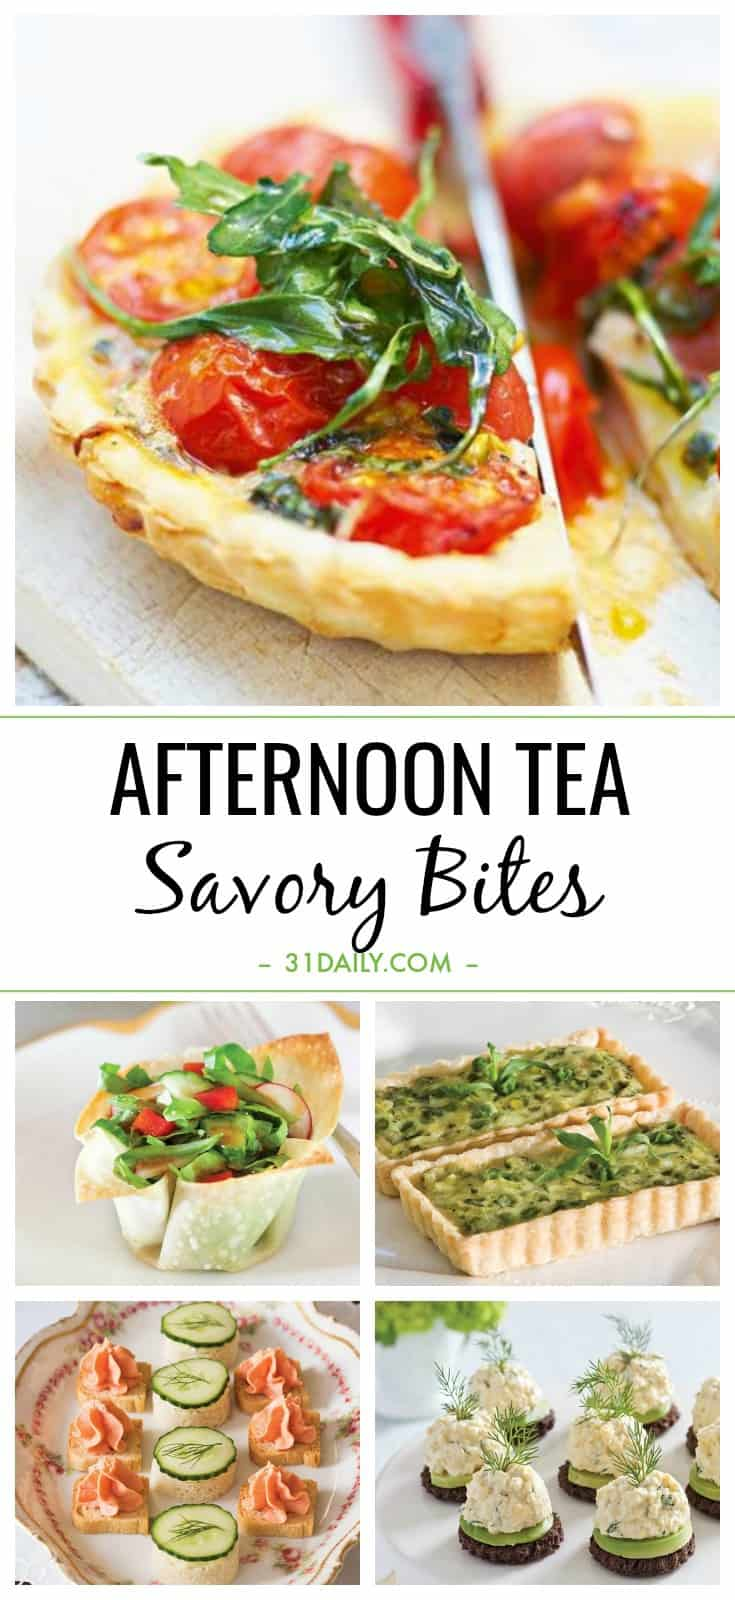 Easy Afternoon Tea Savory Bites: Recipes and Ideas | 31Daily.com